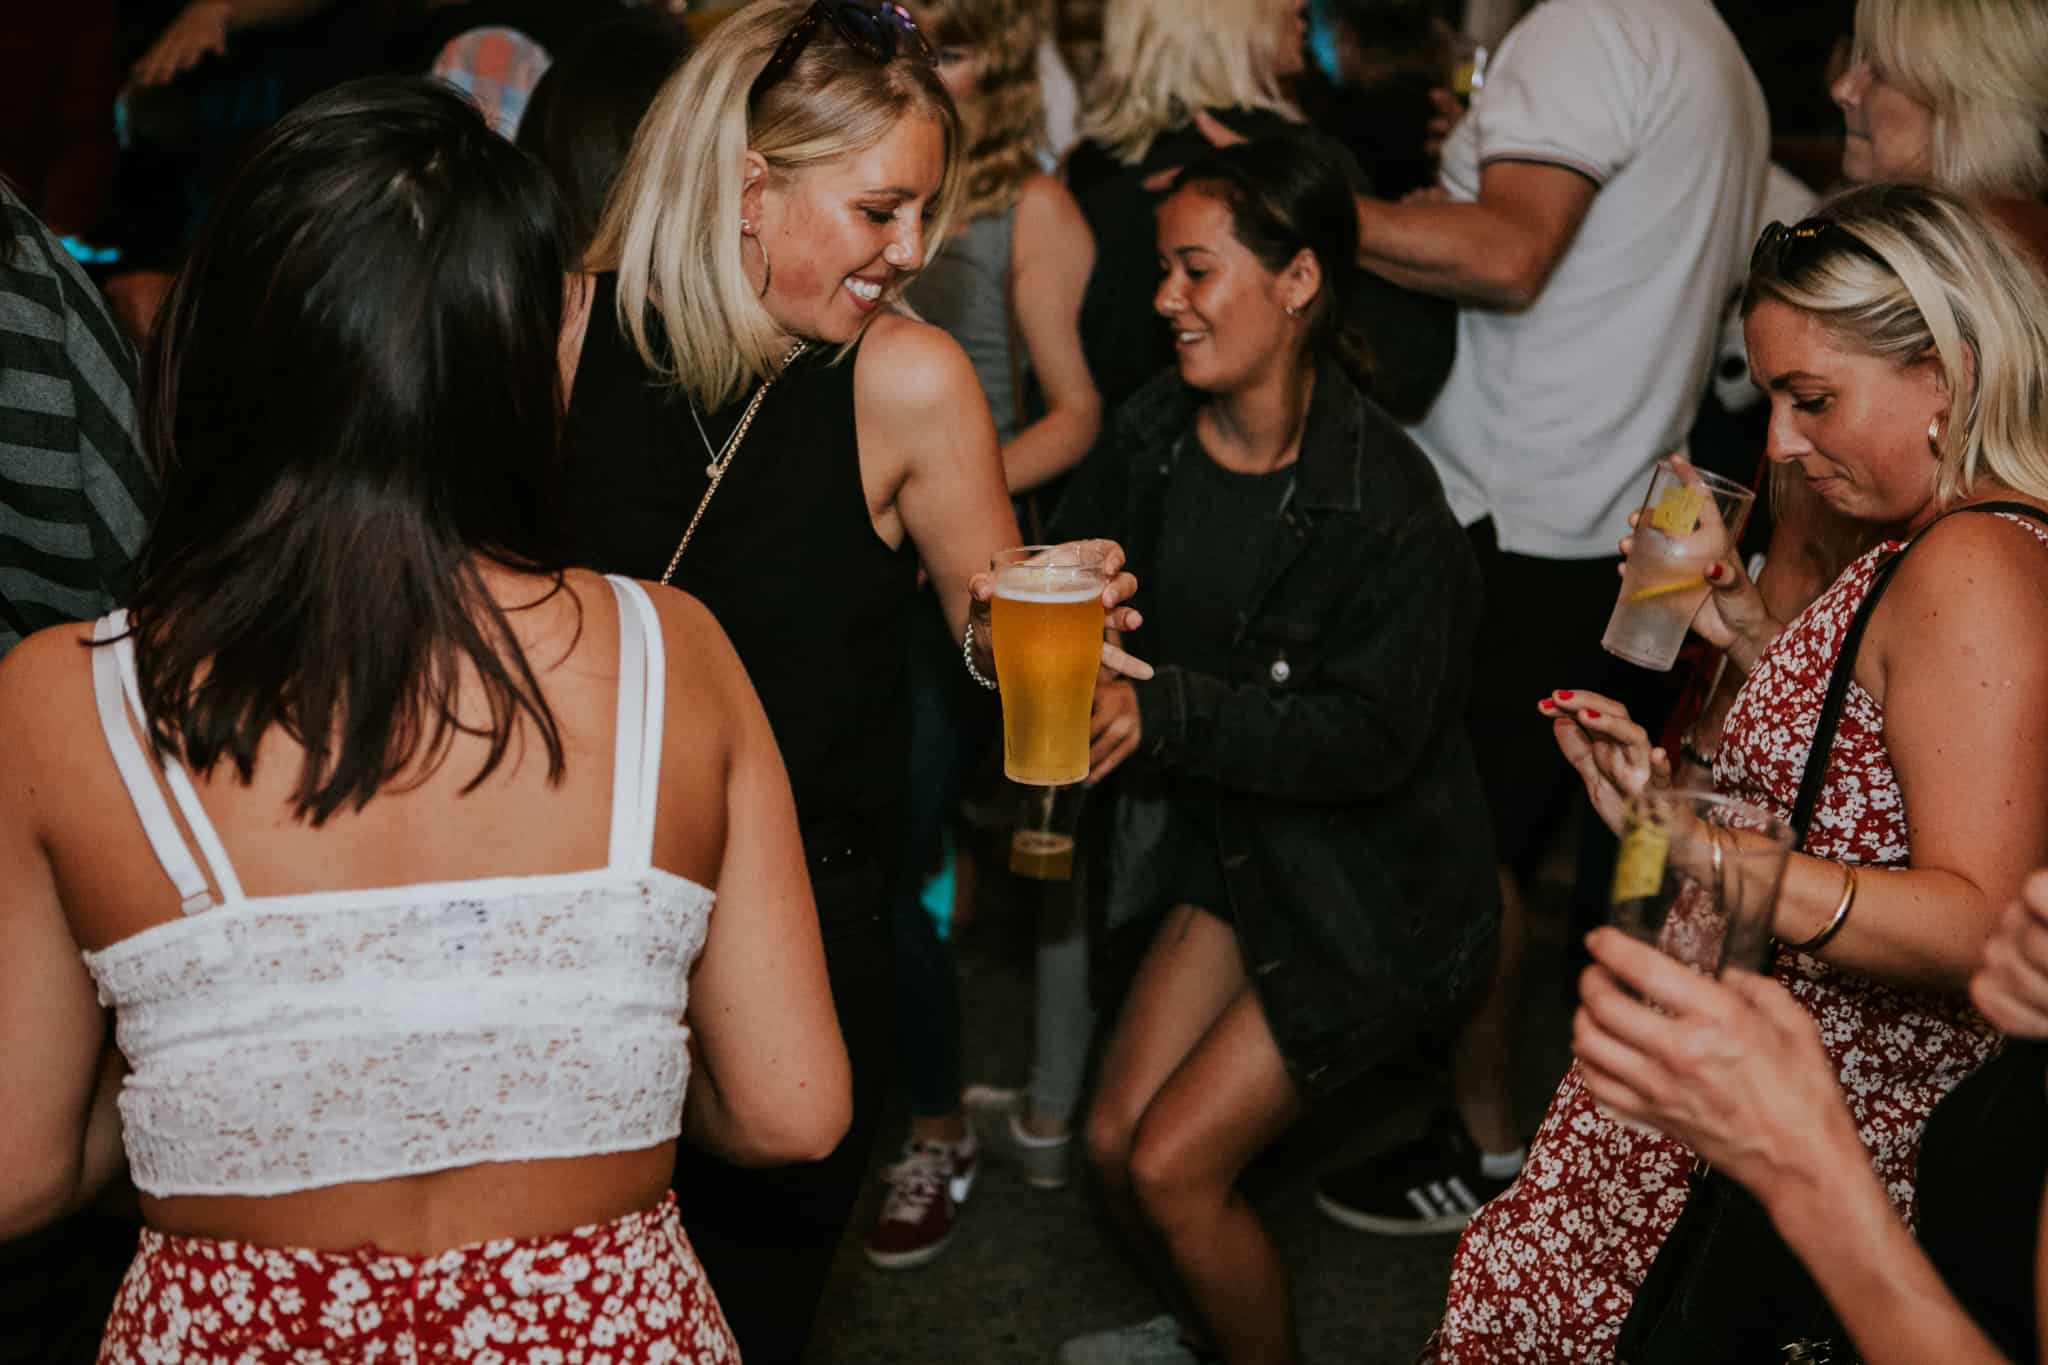 falmouth-week-at-the-working-boat-pub-live-music-events-falmouth-cornwall (109 of 114)